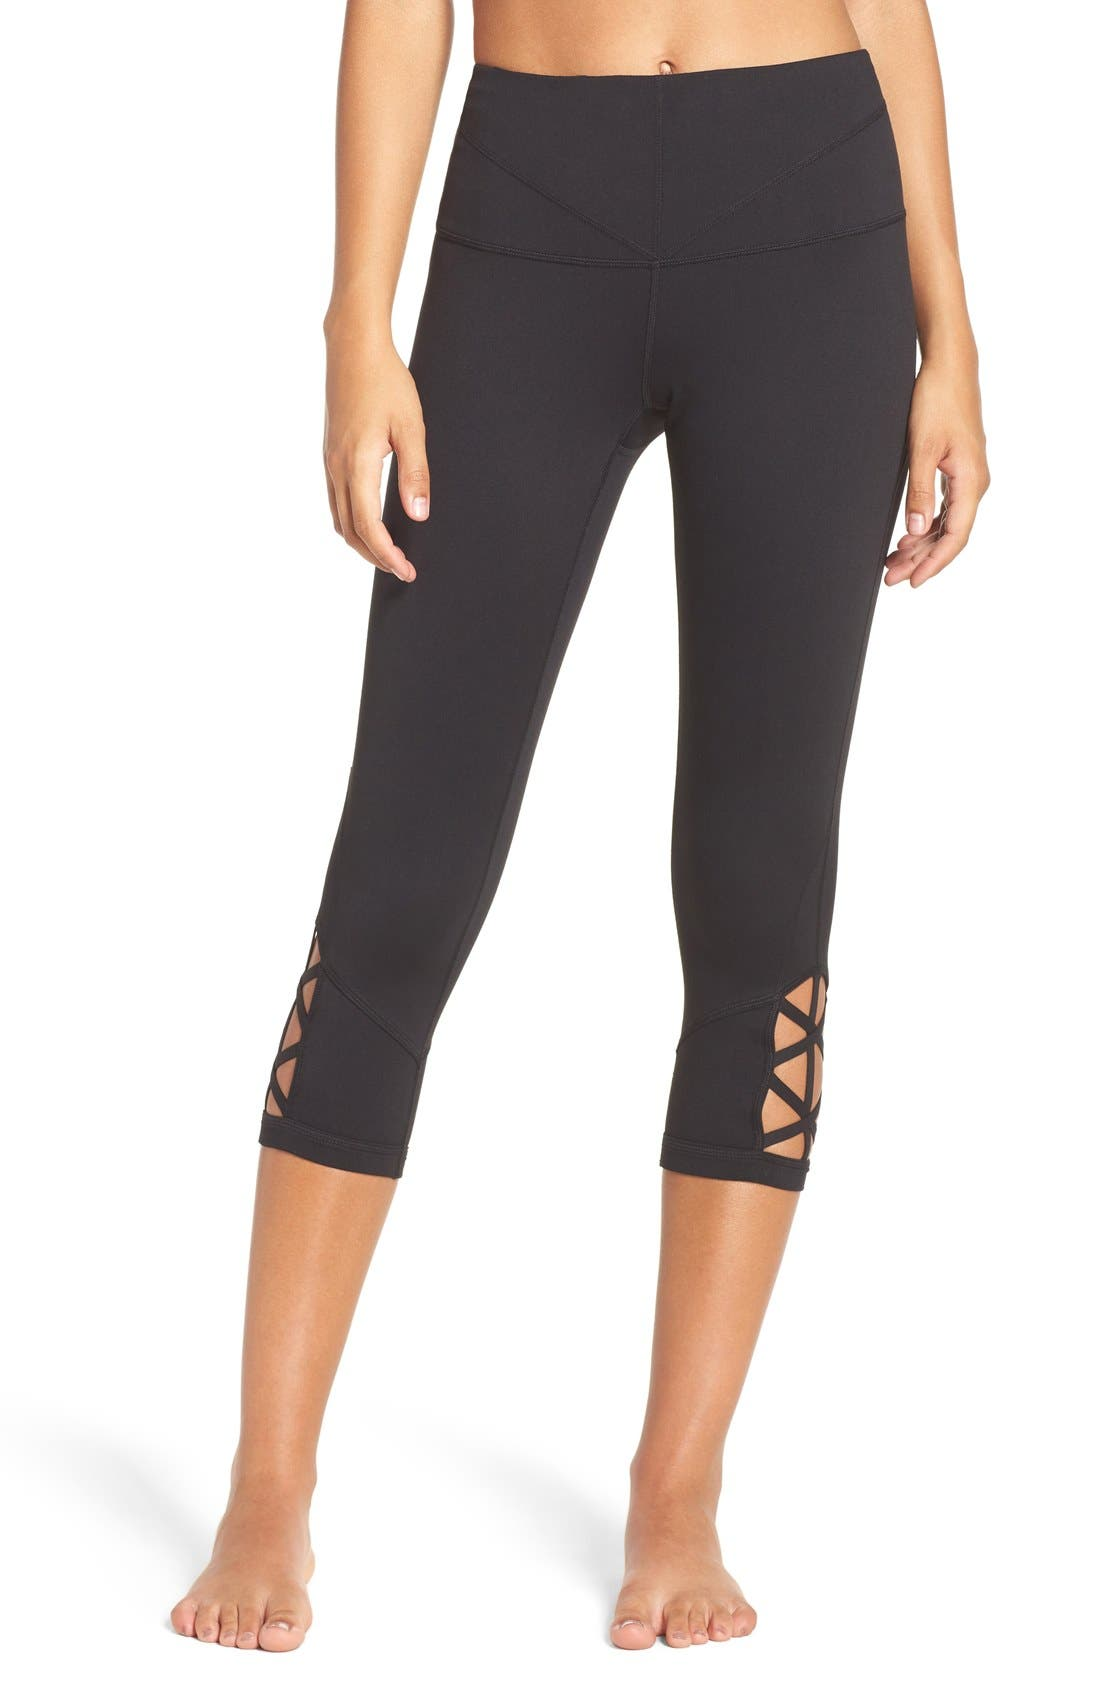 Main Image - Zella 'Midnight' High Waist Crop Leggings